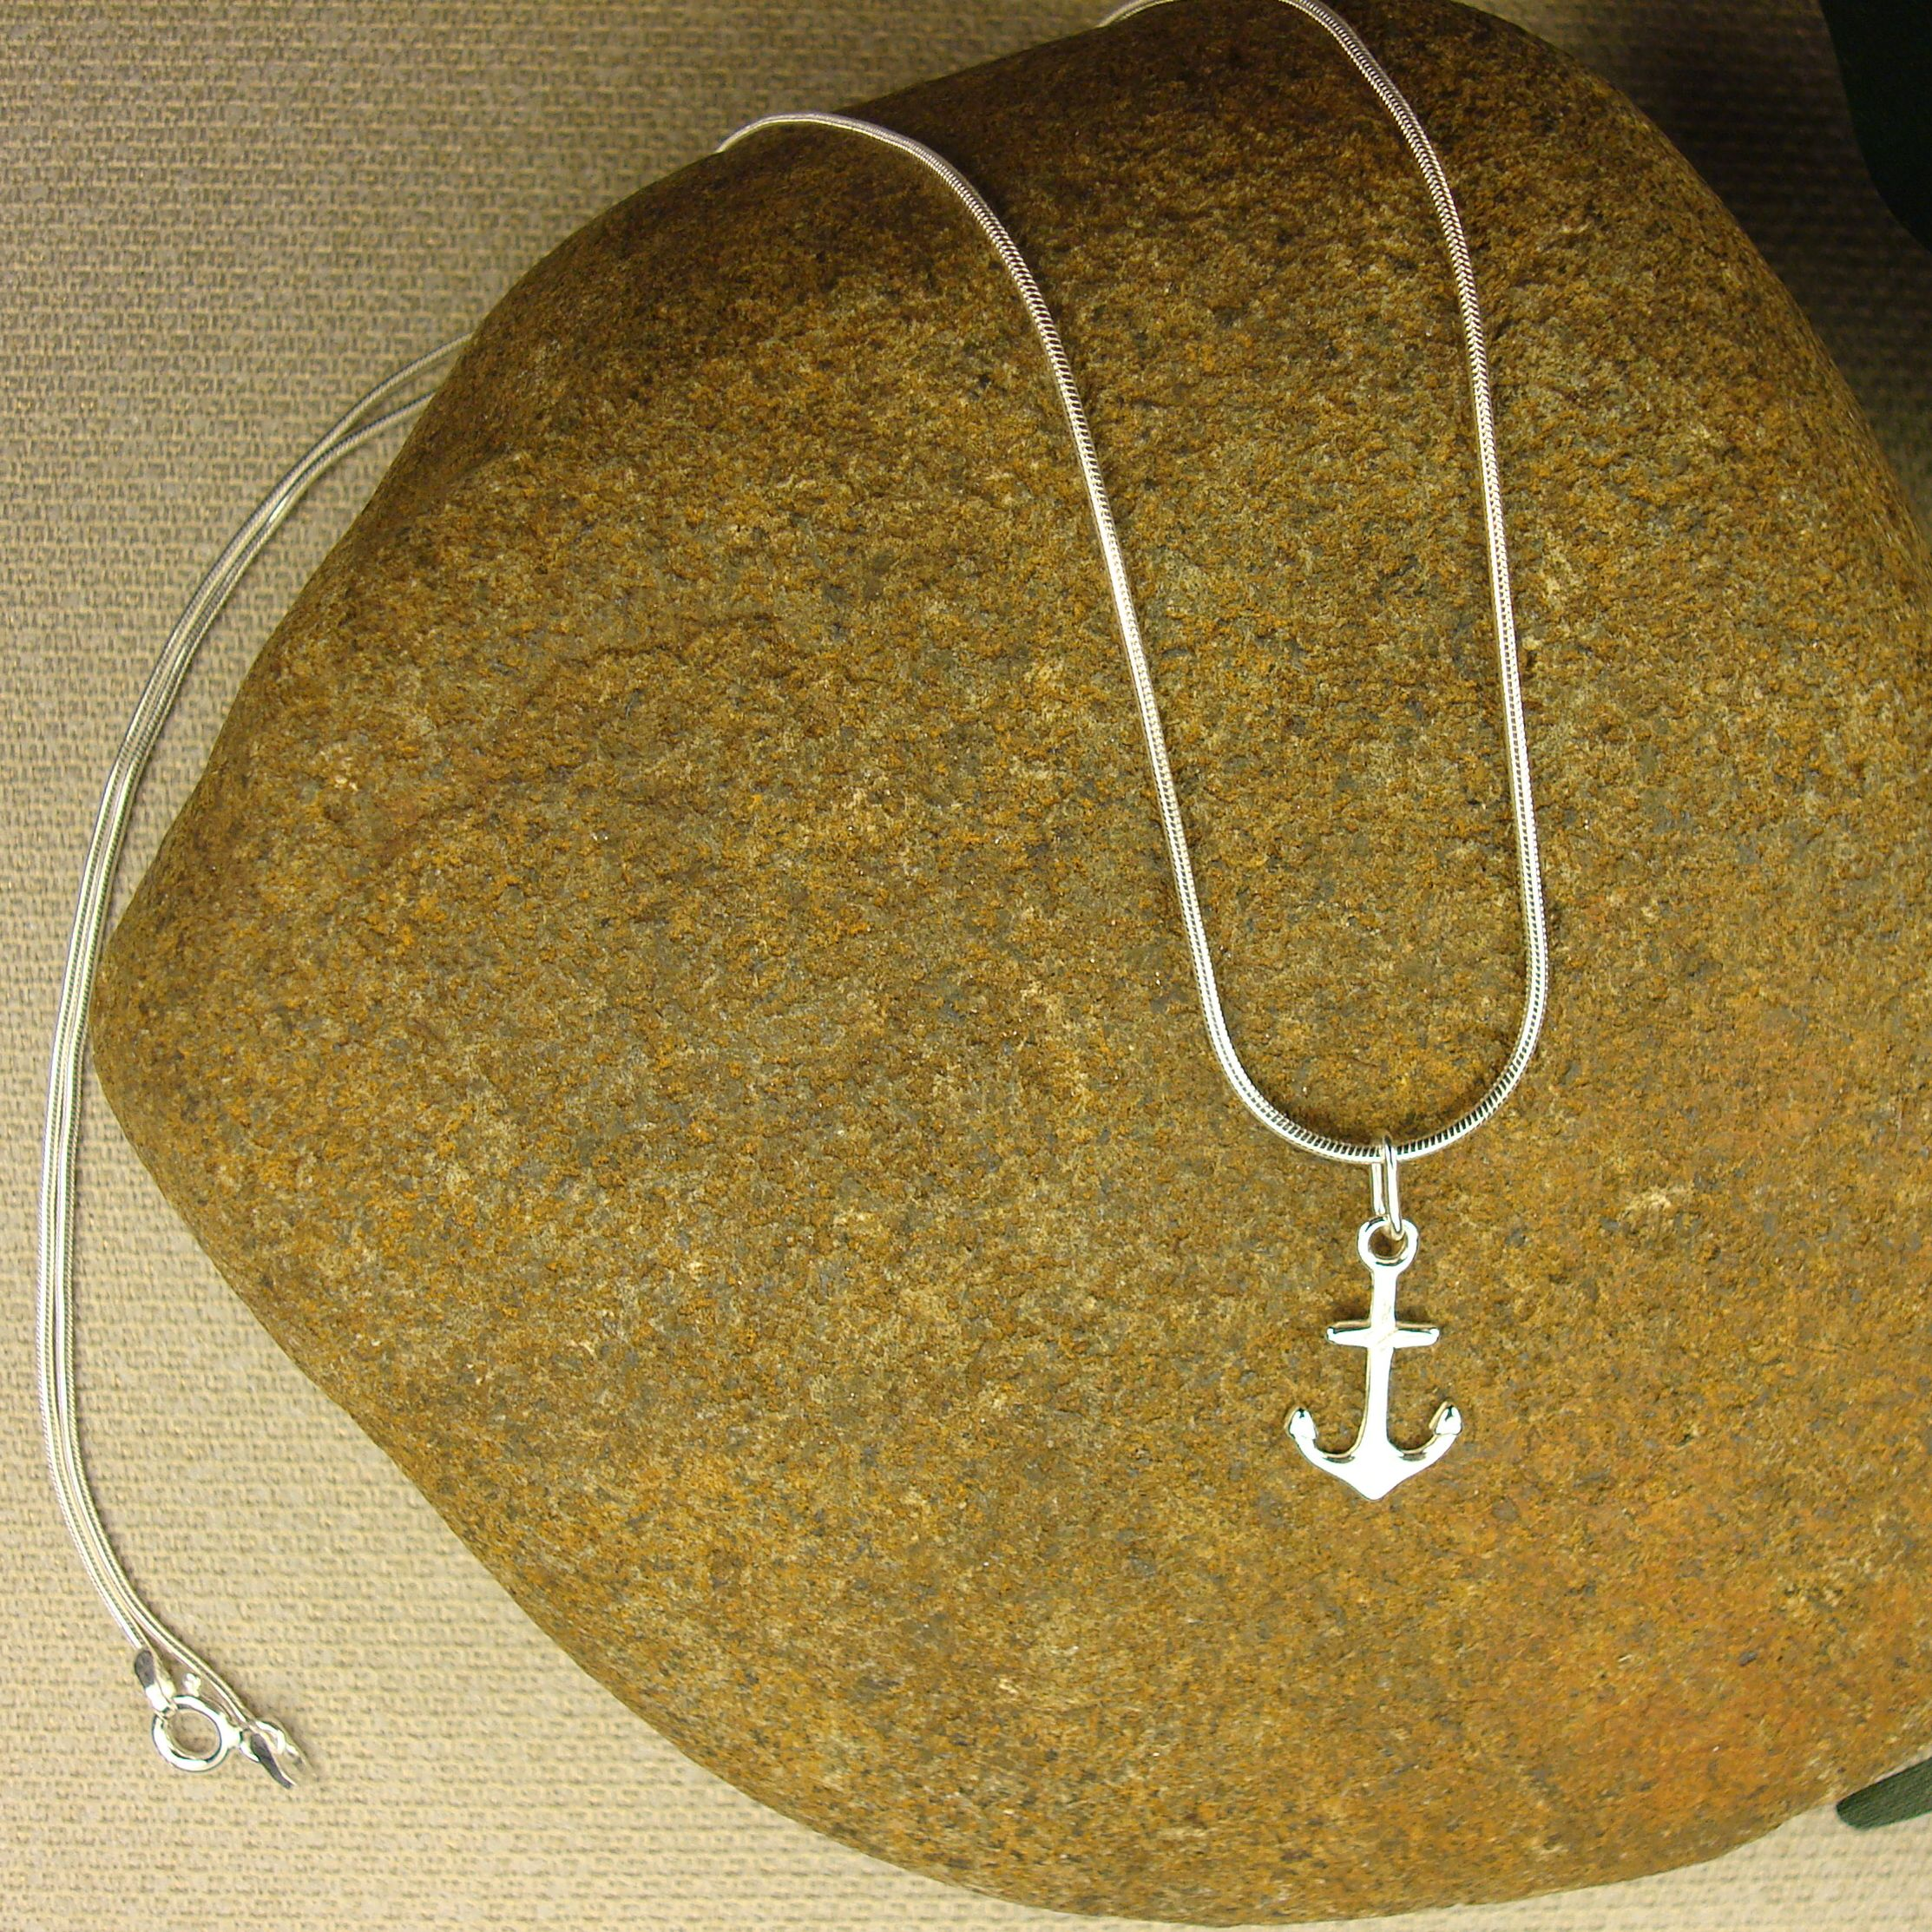 tcw necklace gold tone anchor two jewelry effy pendant diamond seaside